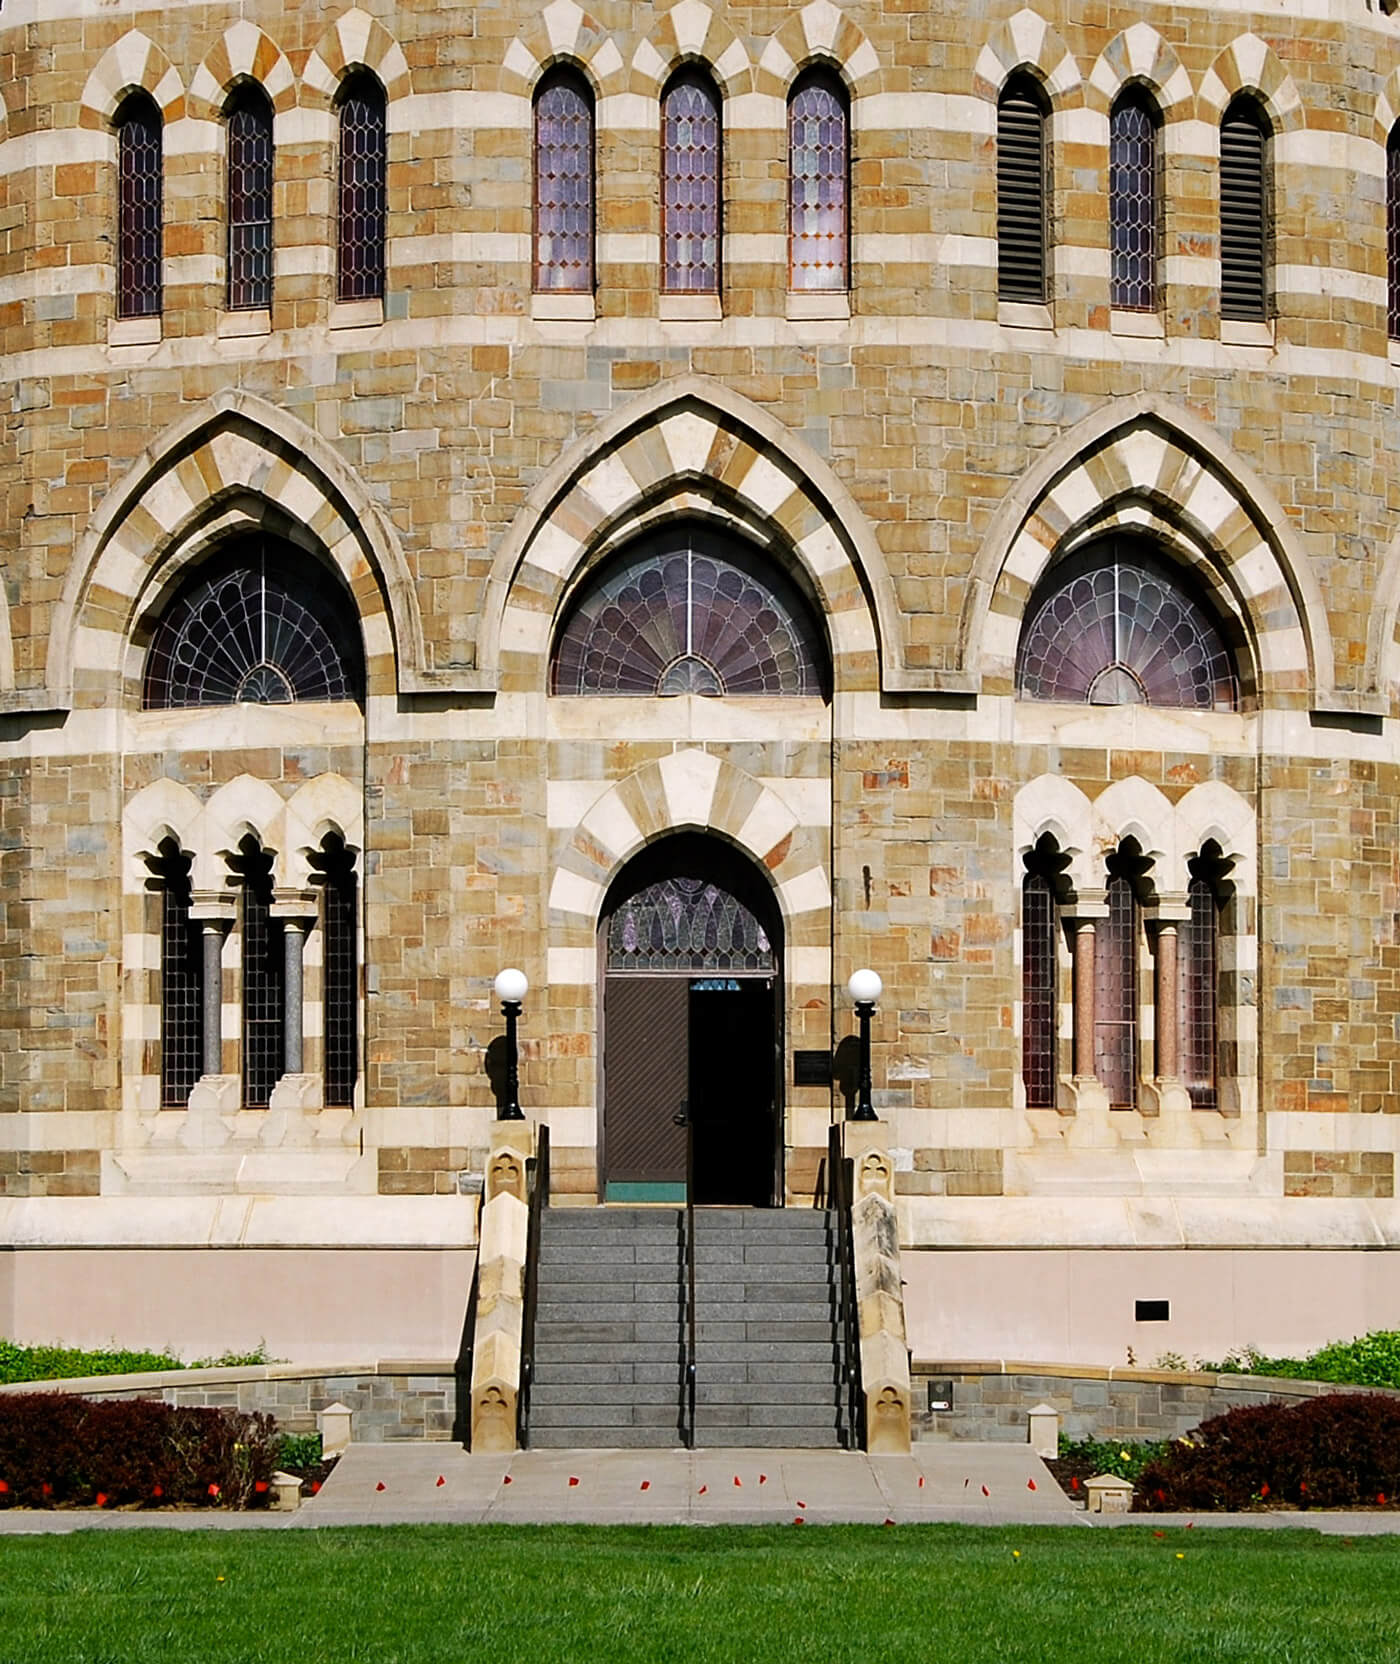 Close up shot of the entrance to Nott Memorial, with grey stairs leading up to an arced doorway, with colored stone patterns adorning the entry way and the windows.